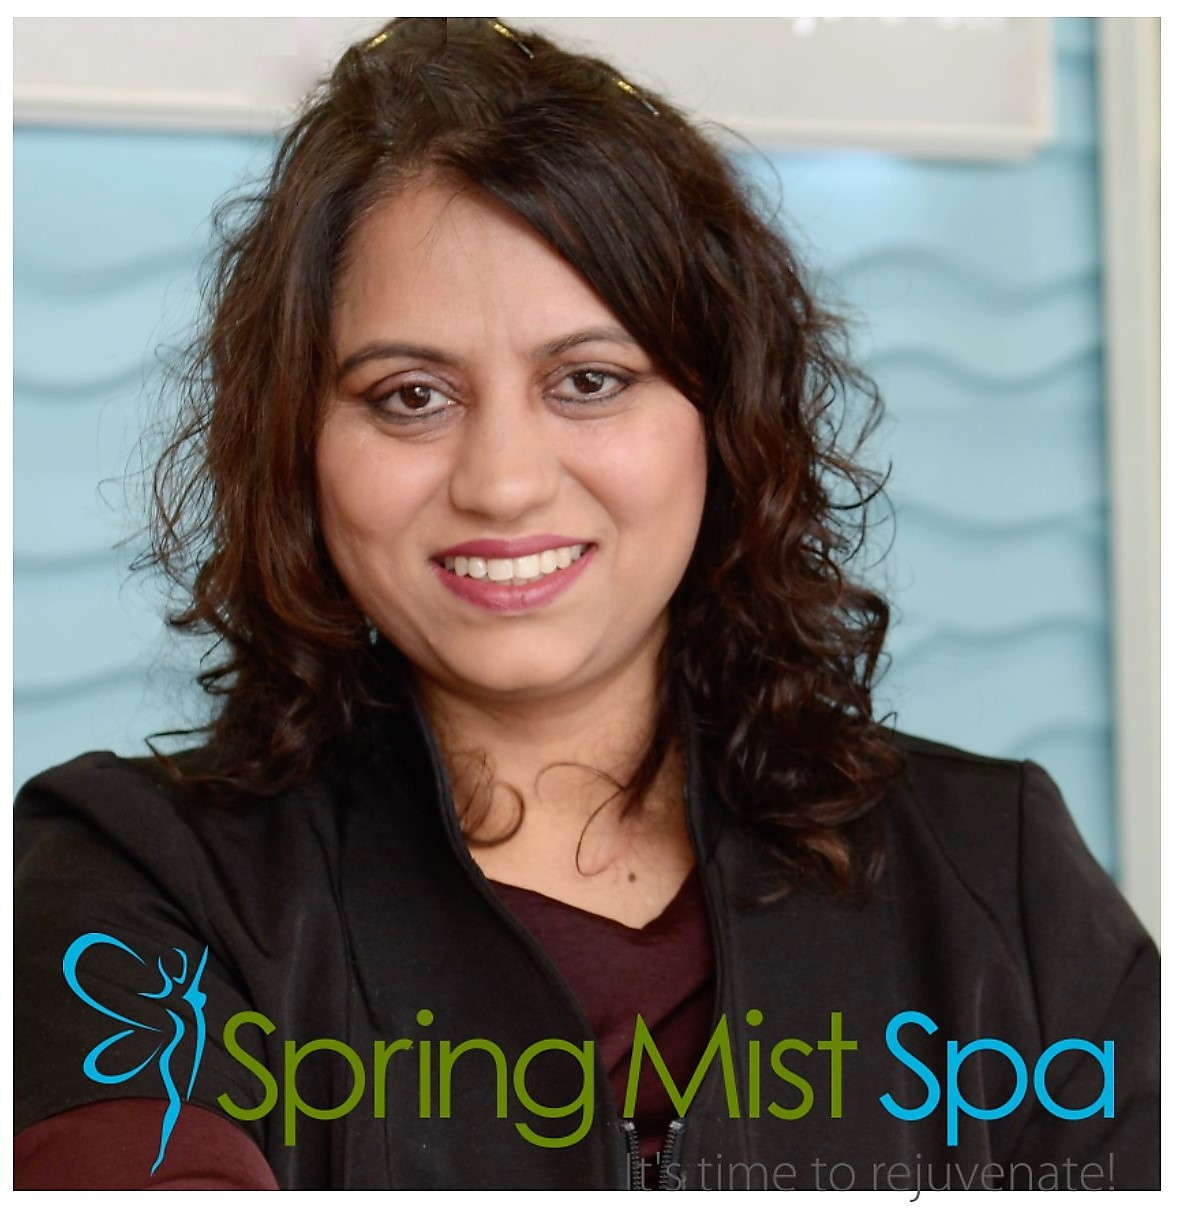 Spring Mist Spa Milton blog